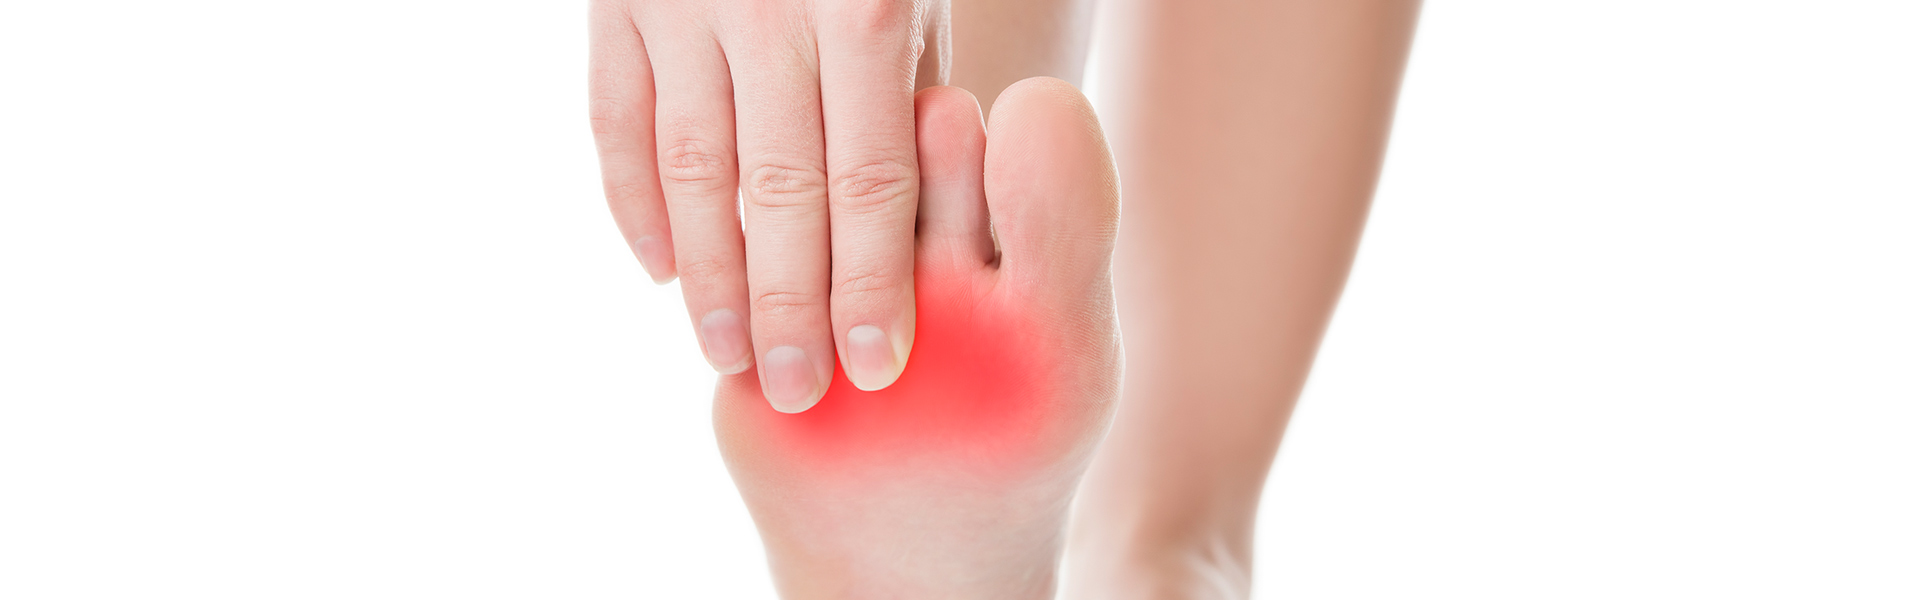 Hammer Toe & Bunion Treatment in St. Catharines